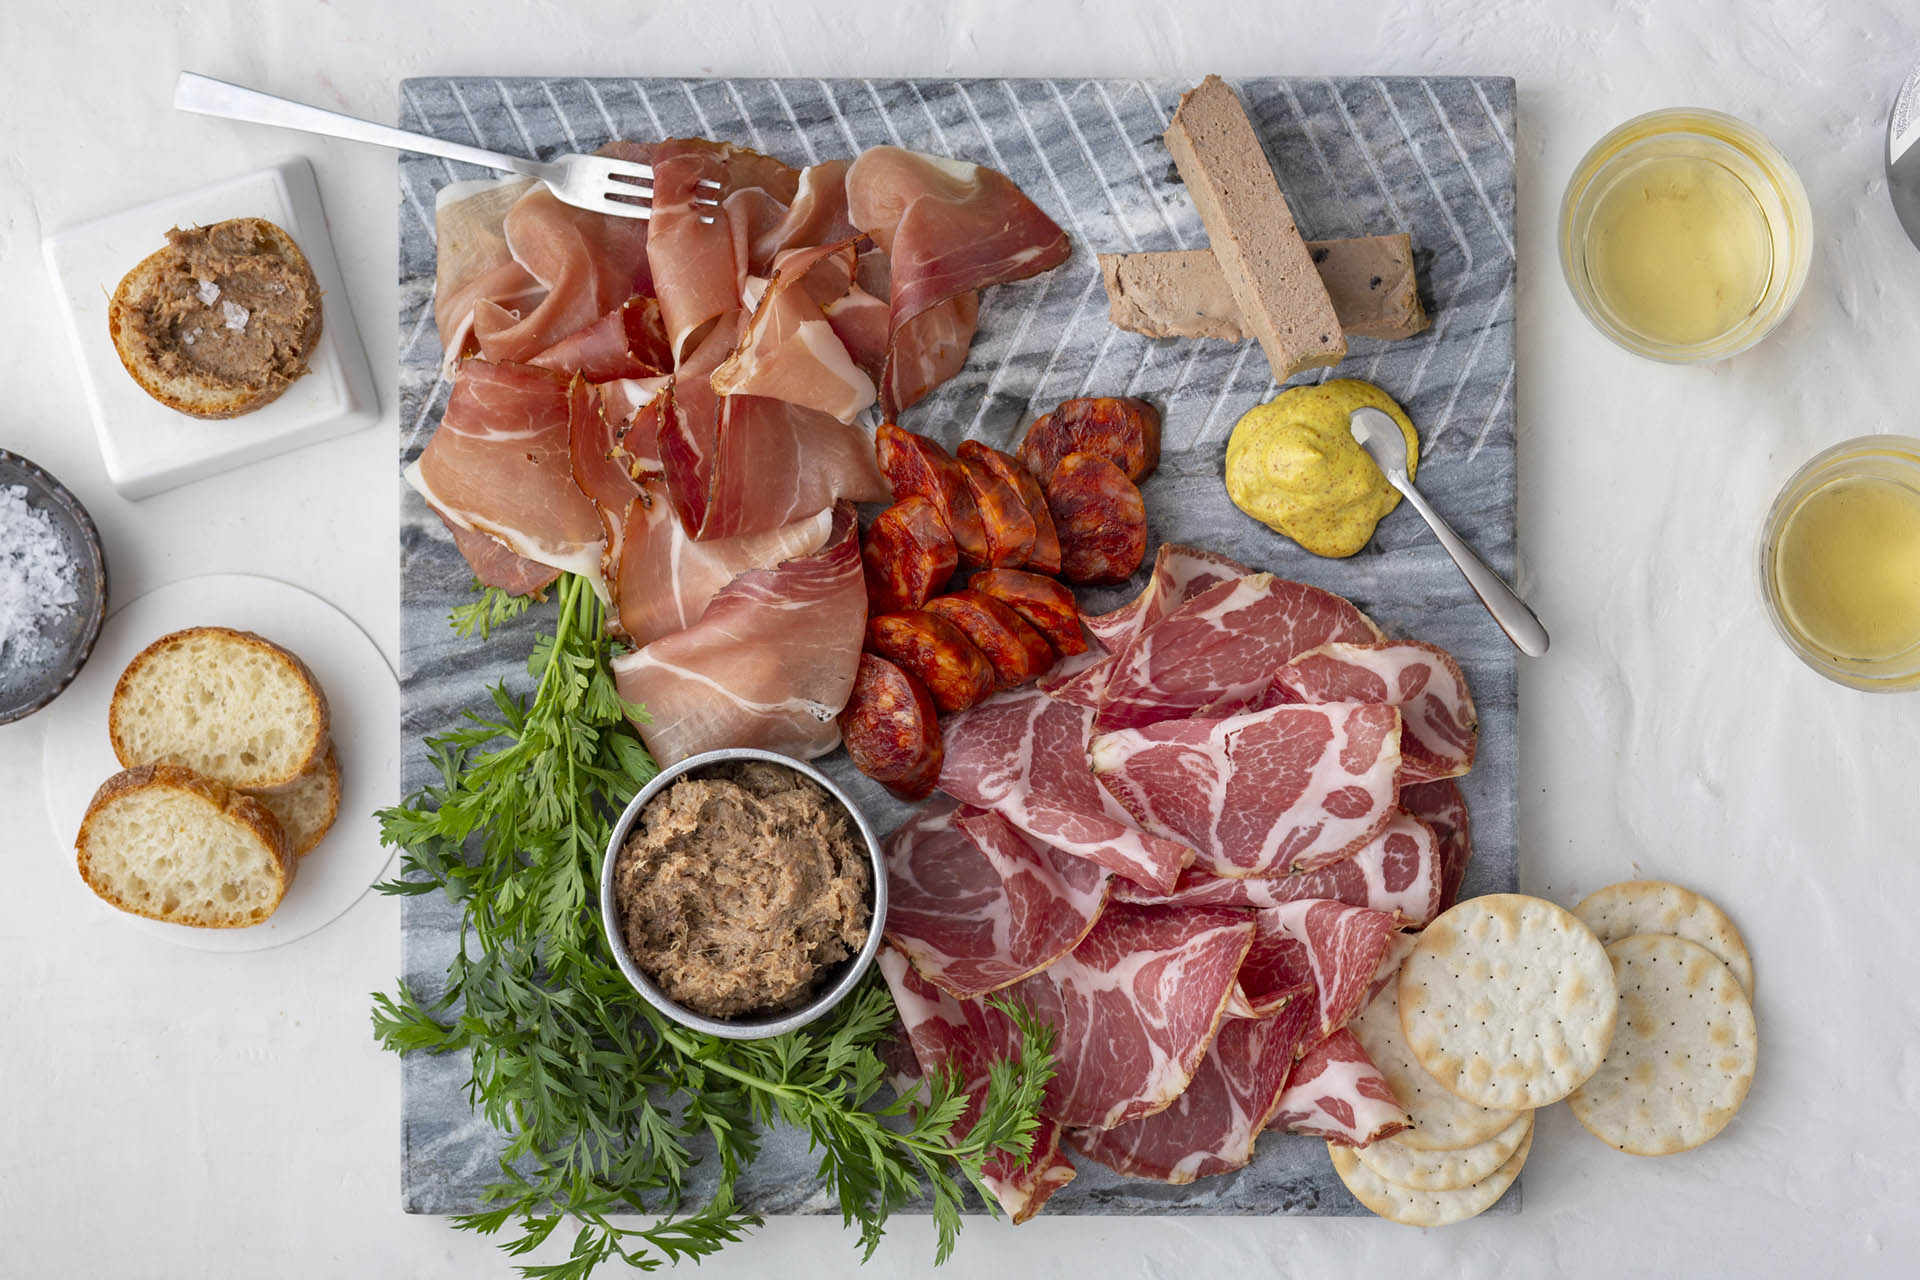 Speck, chorizo picante, coppa, duck rillette and mousse du périgord / Photo by Meg Baggott, styling by Jenn de la Vega